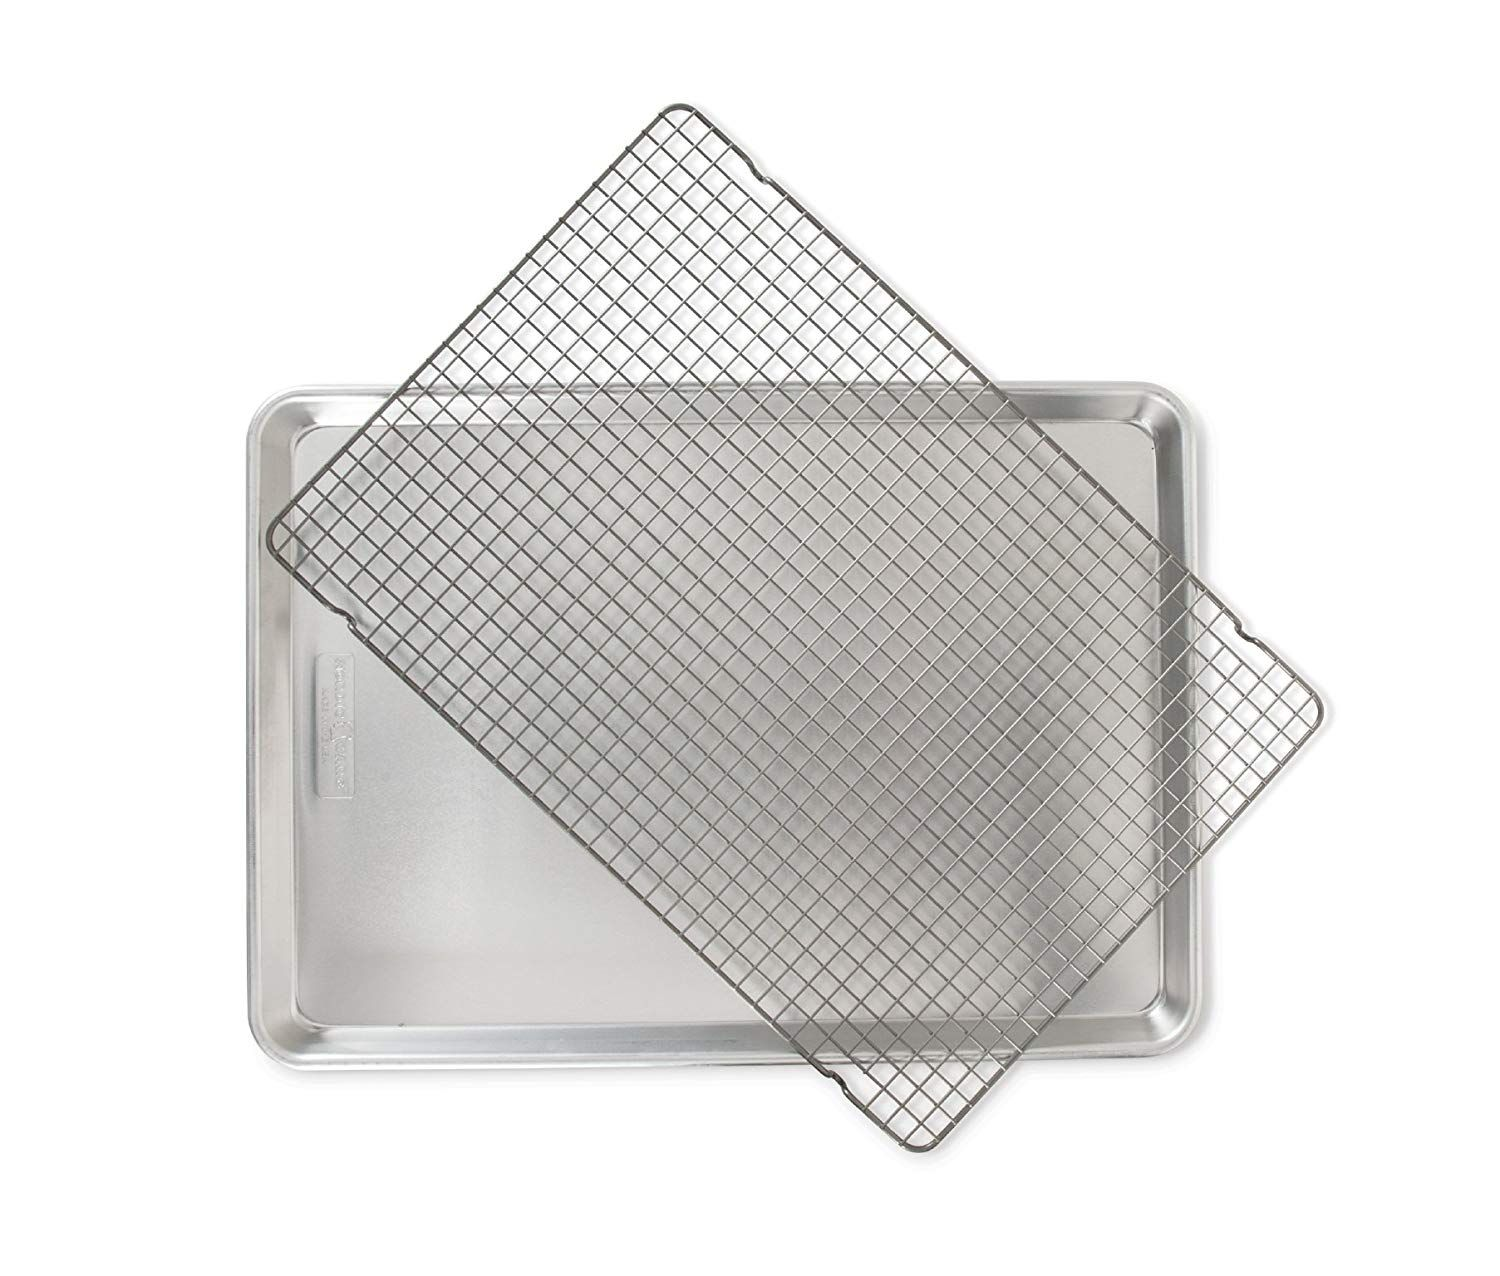 Nordic Ware 2 Piece Big Sheet With Oven Safe Grid Want To Know